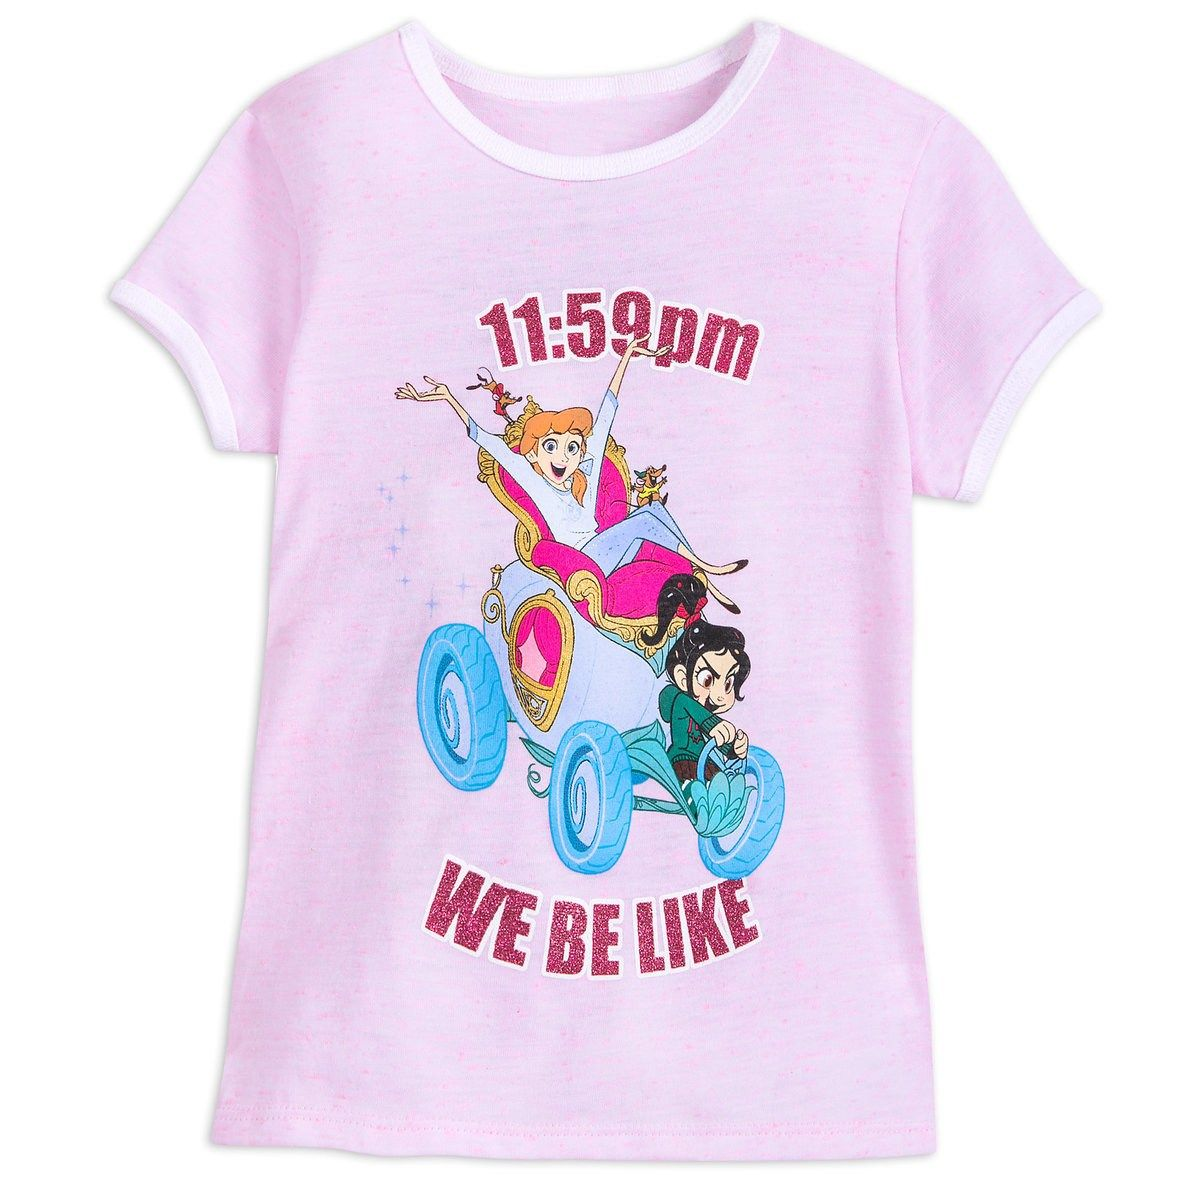 DISNEY STORE WRECK-IT RALPH BREAKS THE INTERNET RALPH /& VANELLOPE TEE T-SHIRT